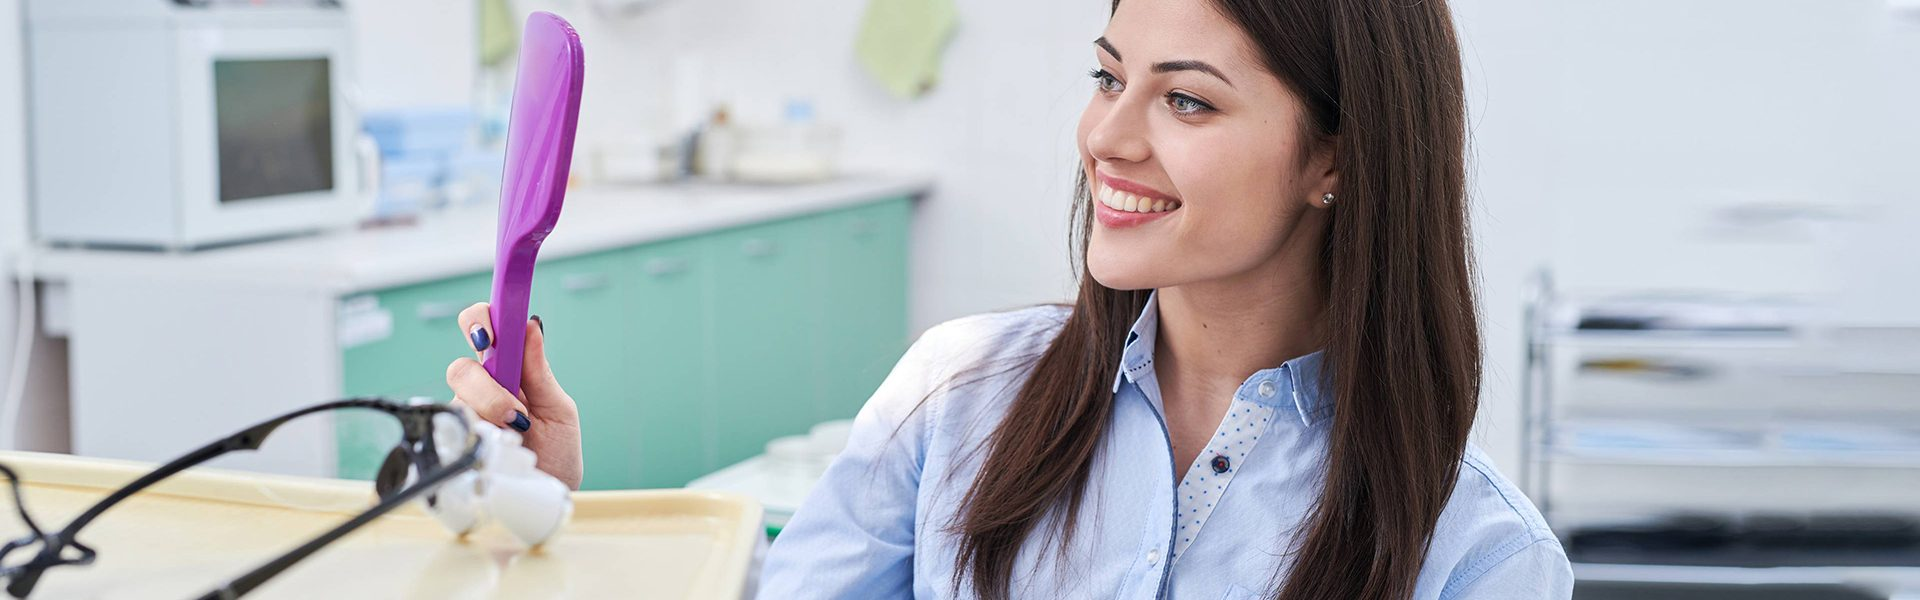 How To Improve Oral Health With Dental Exams And Cleaning.